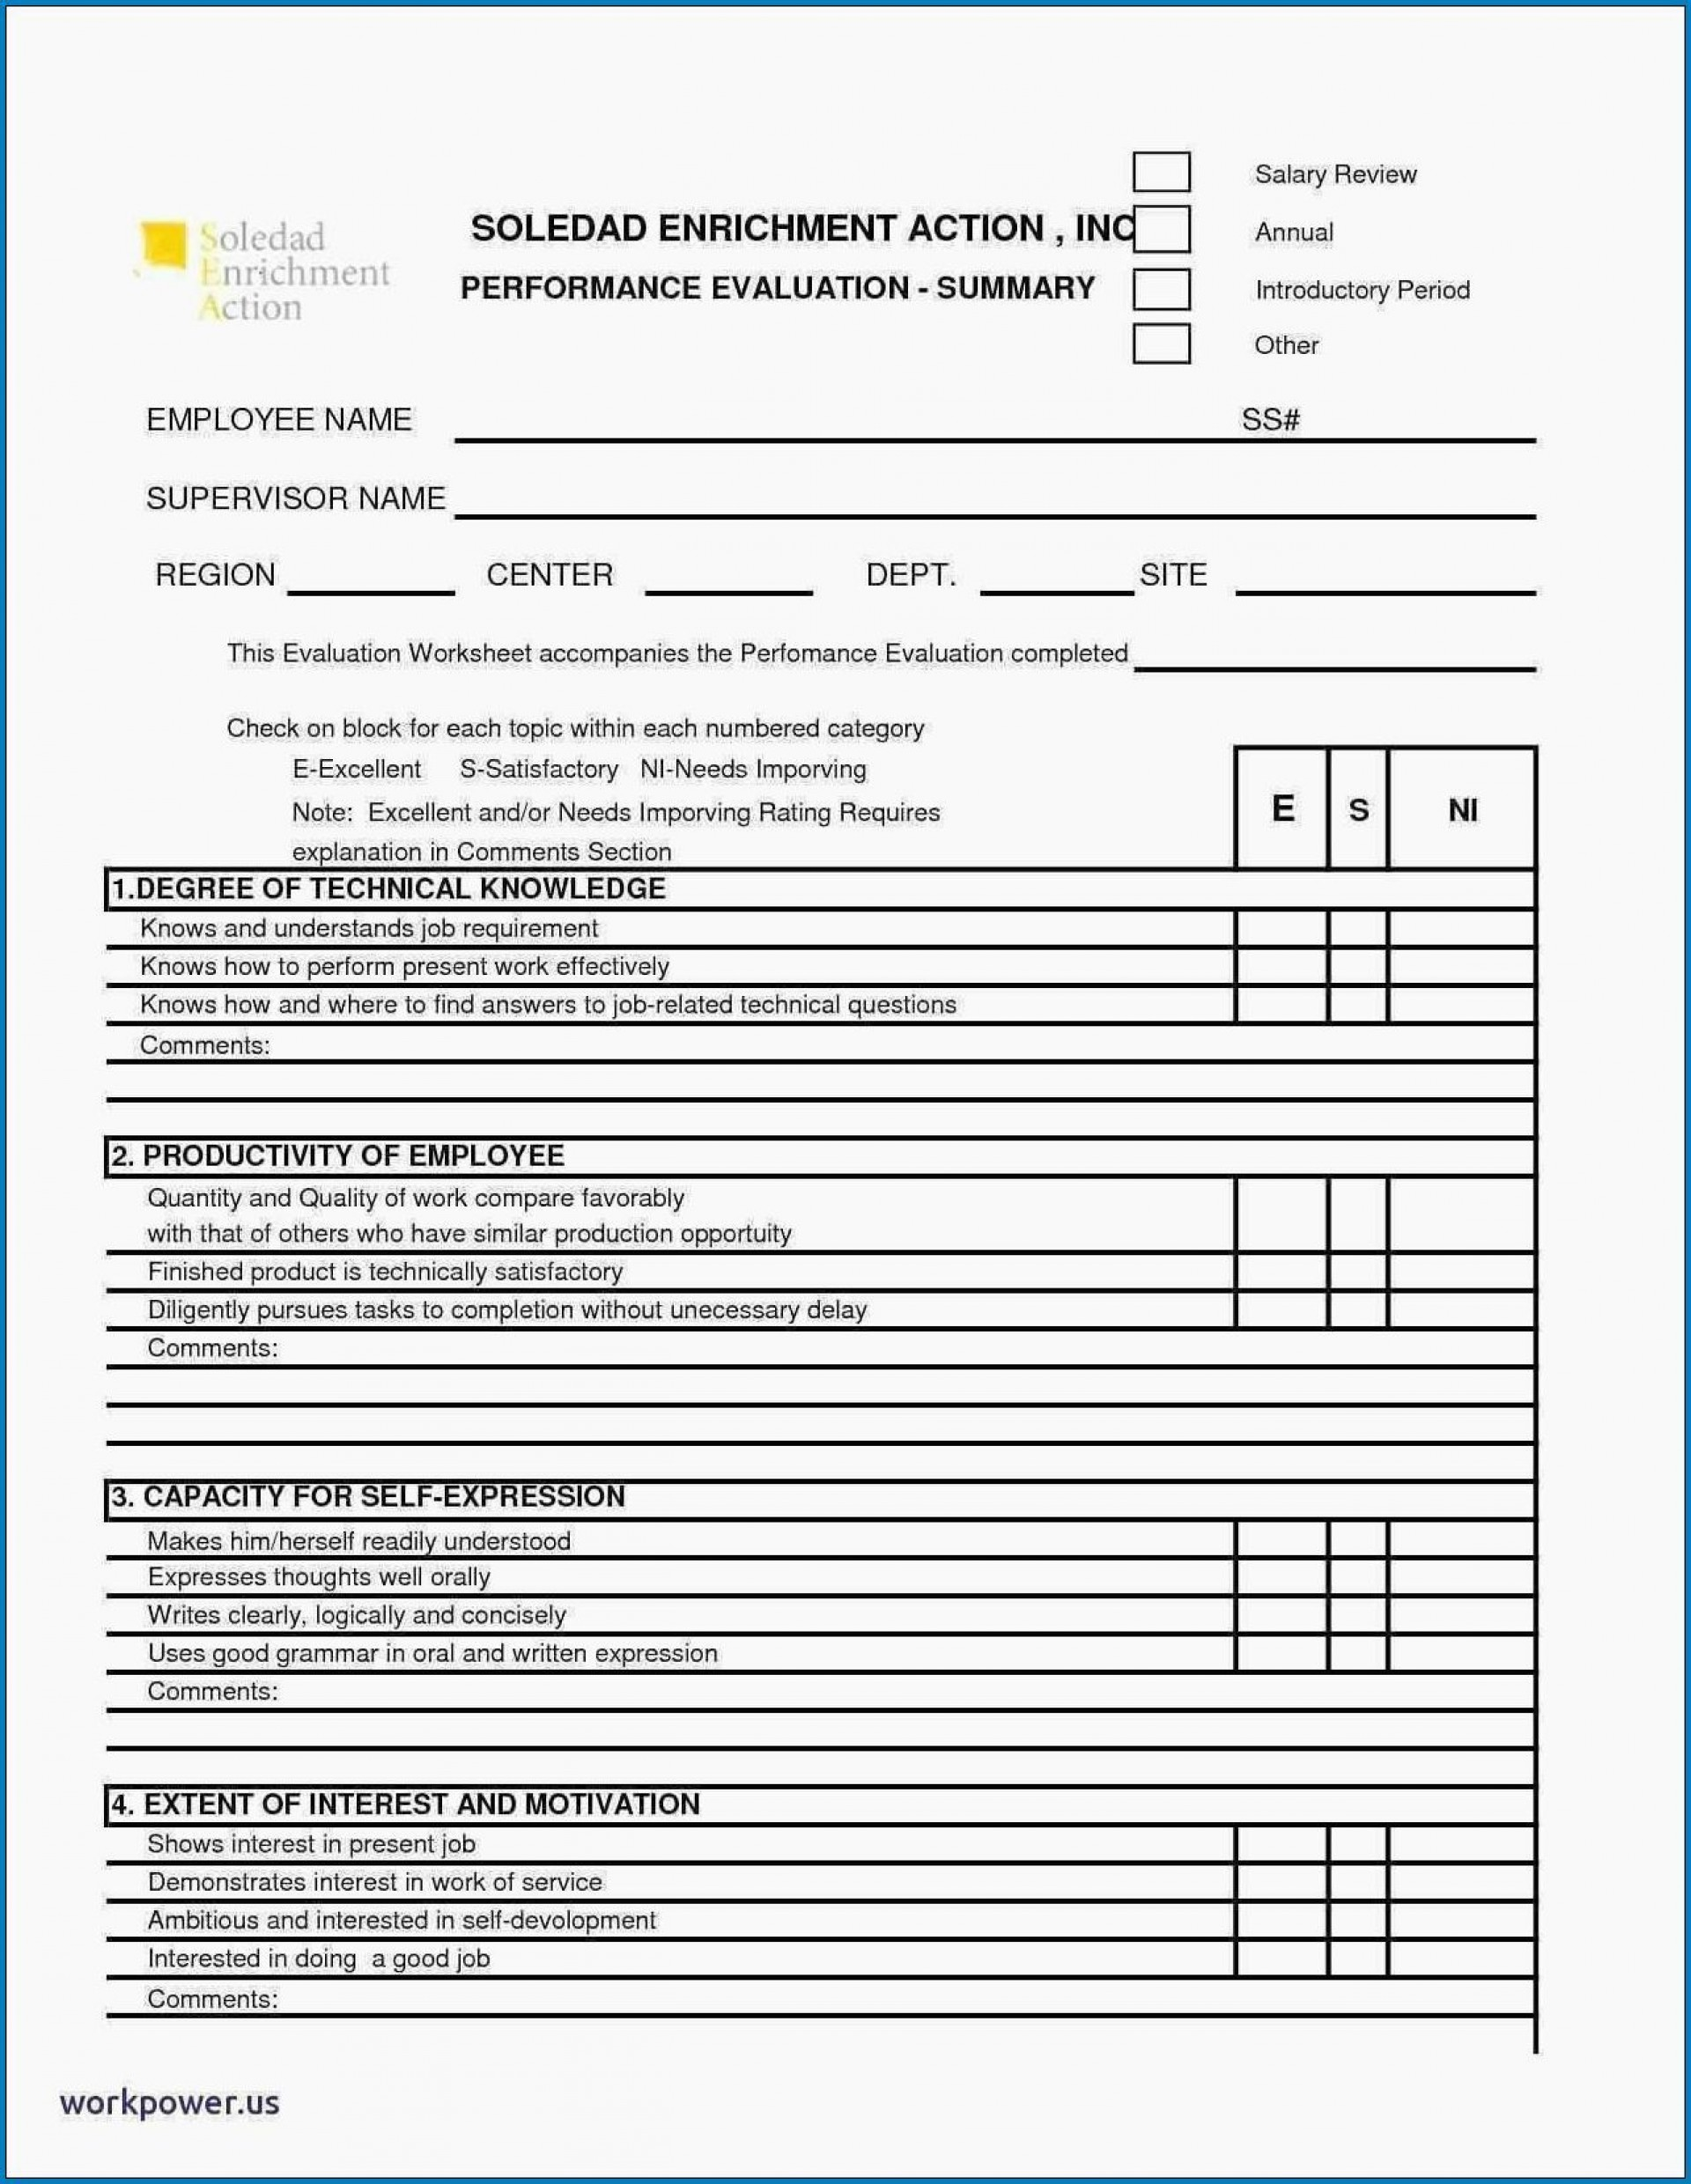 008 Remarkable Employee Performance Review Template Word Image  Microsoft Document1920